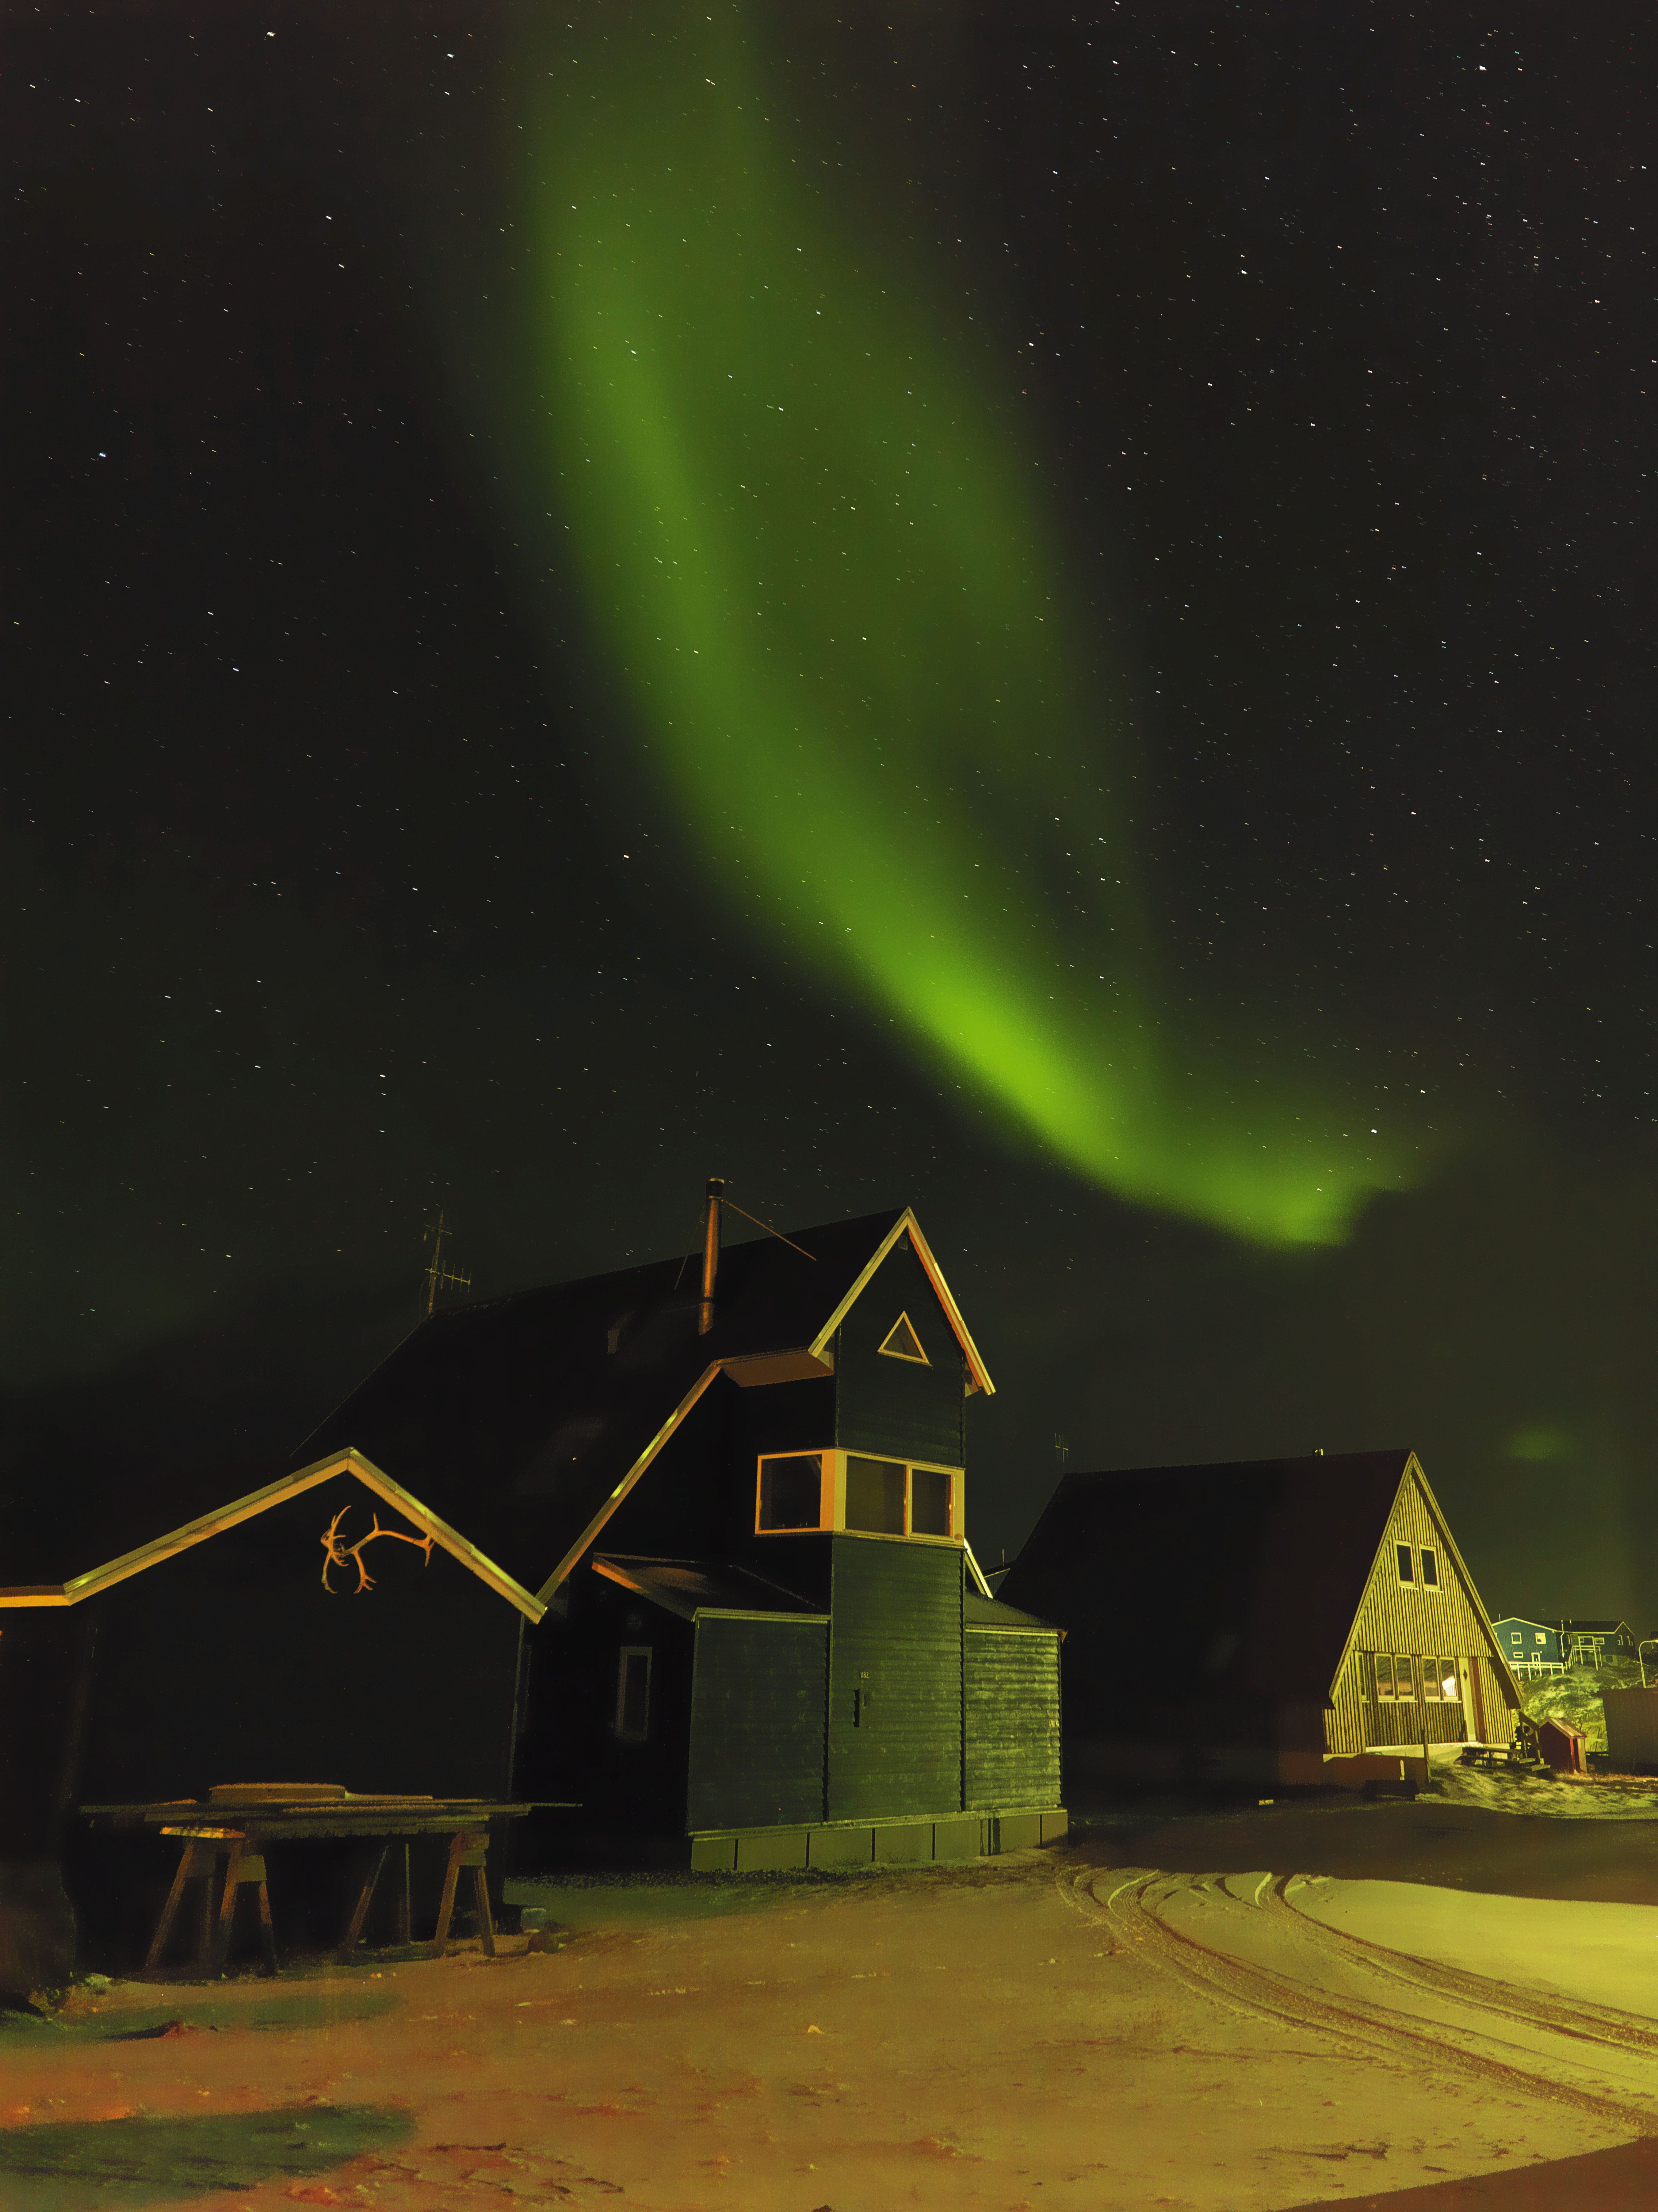 the perfect backdrop. #Greenland #Northernlights